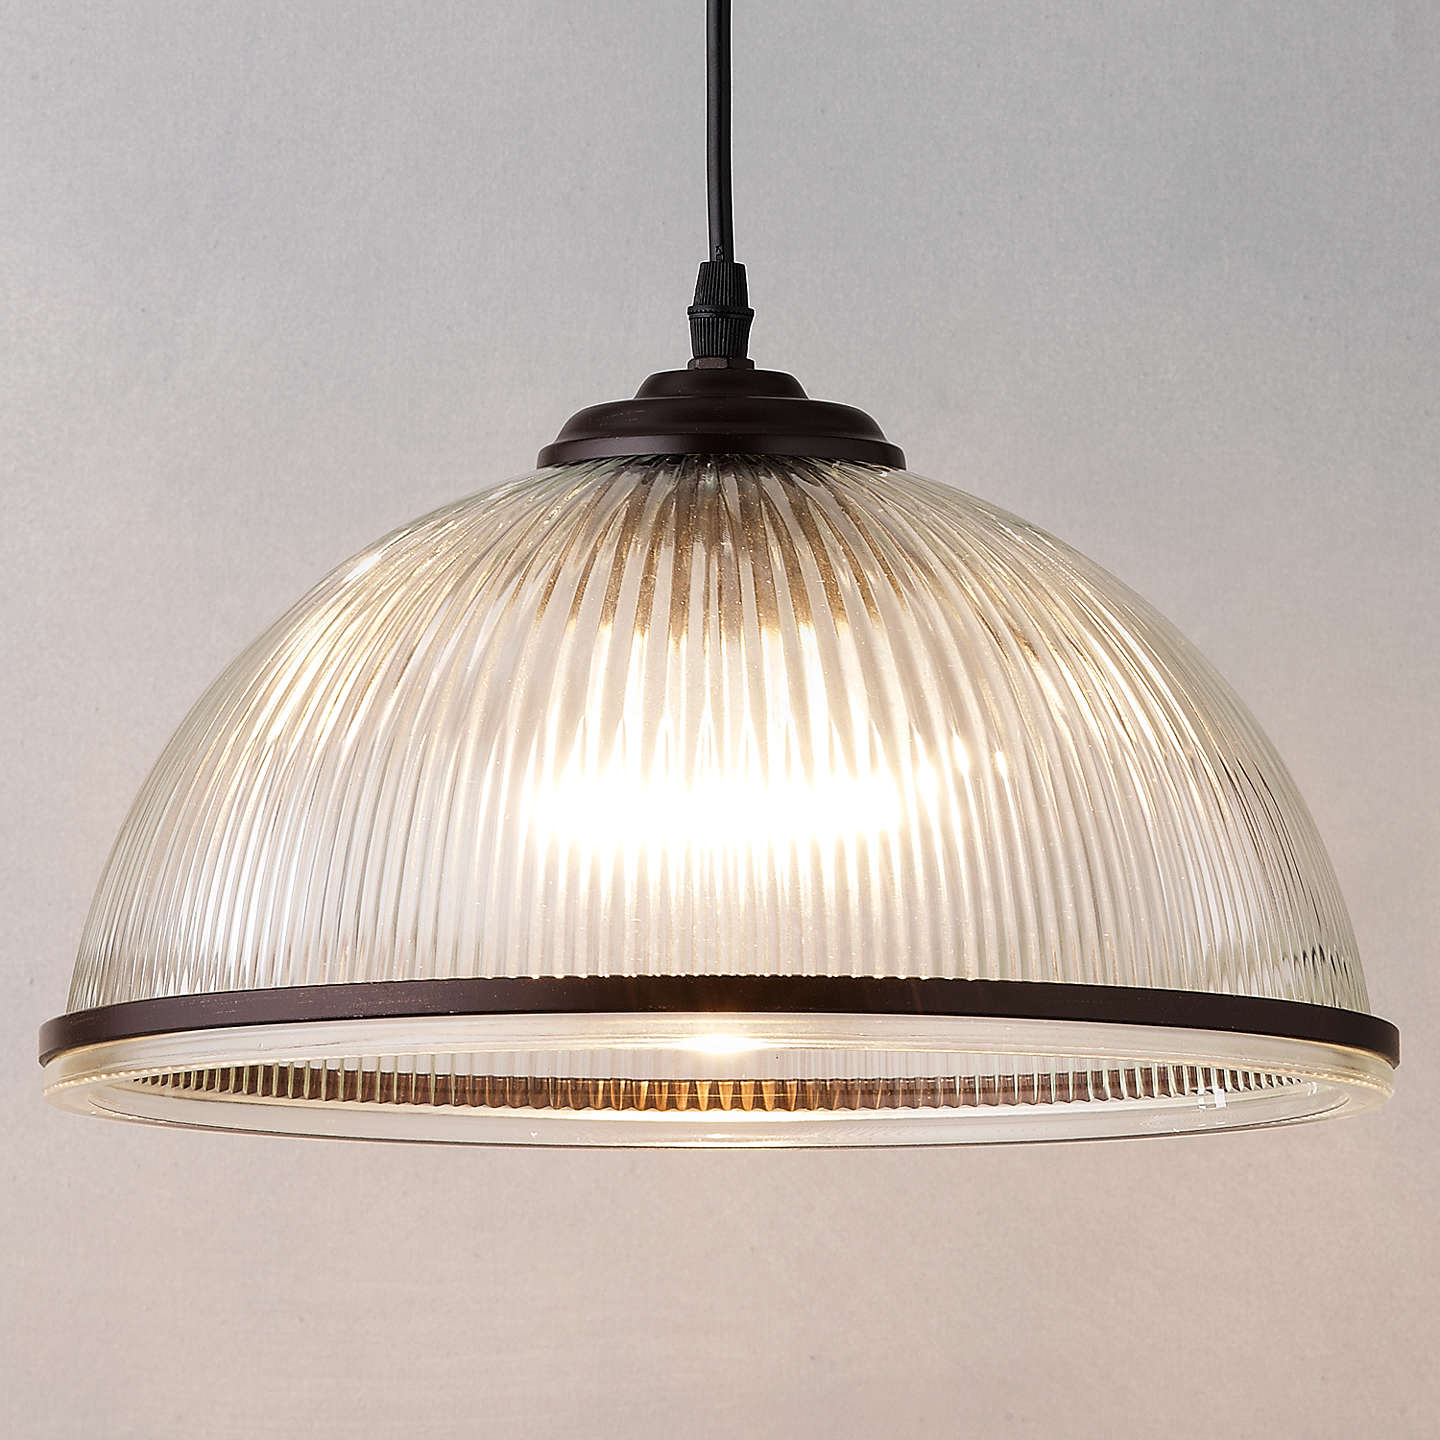 Croft Collection Tristan Ceiling Light At Johnlewis Com